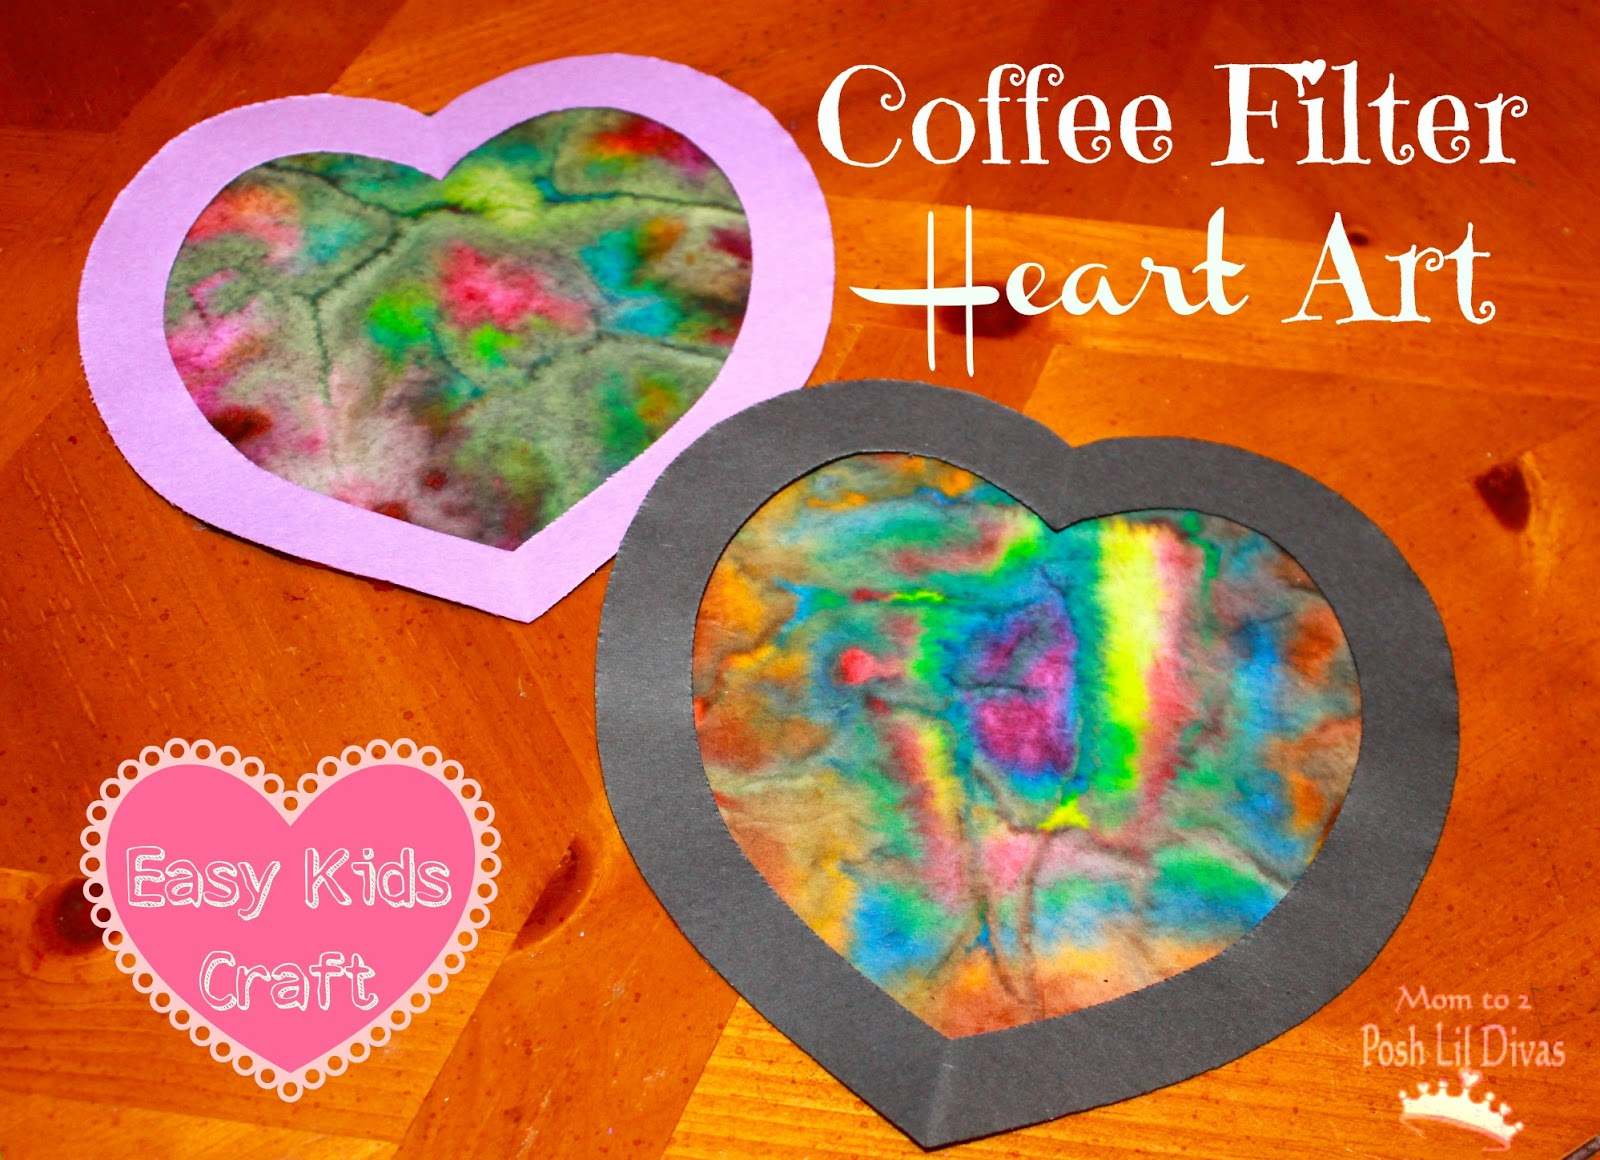 Coffee Filter Heart Art